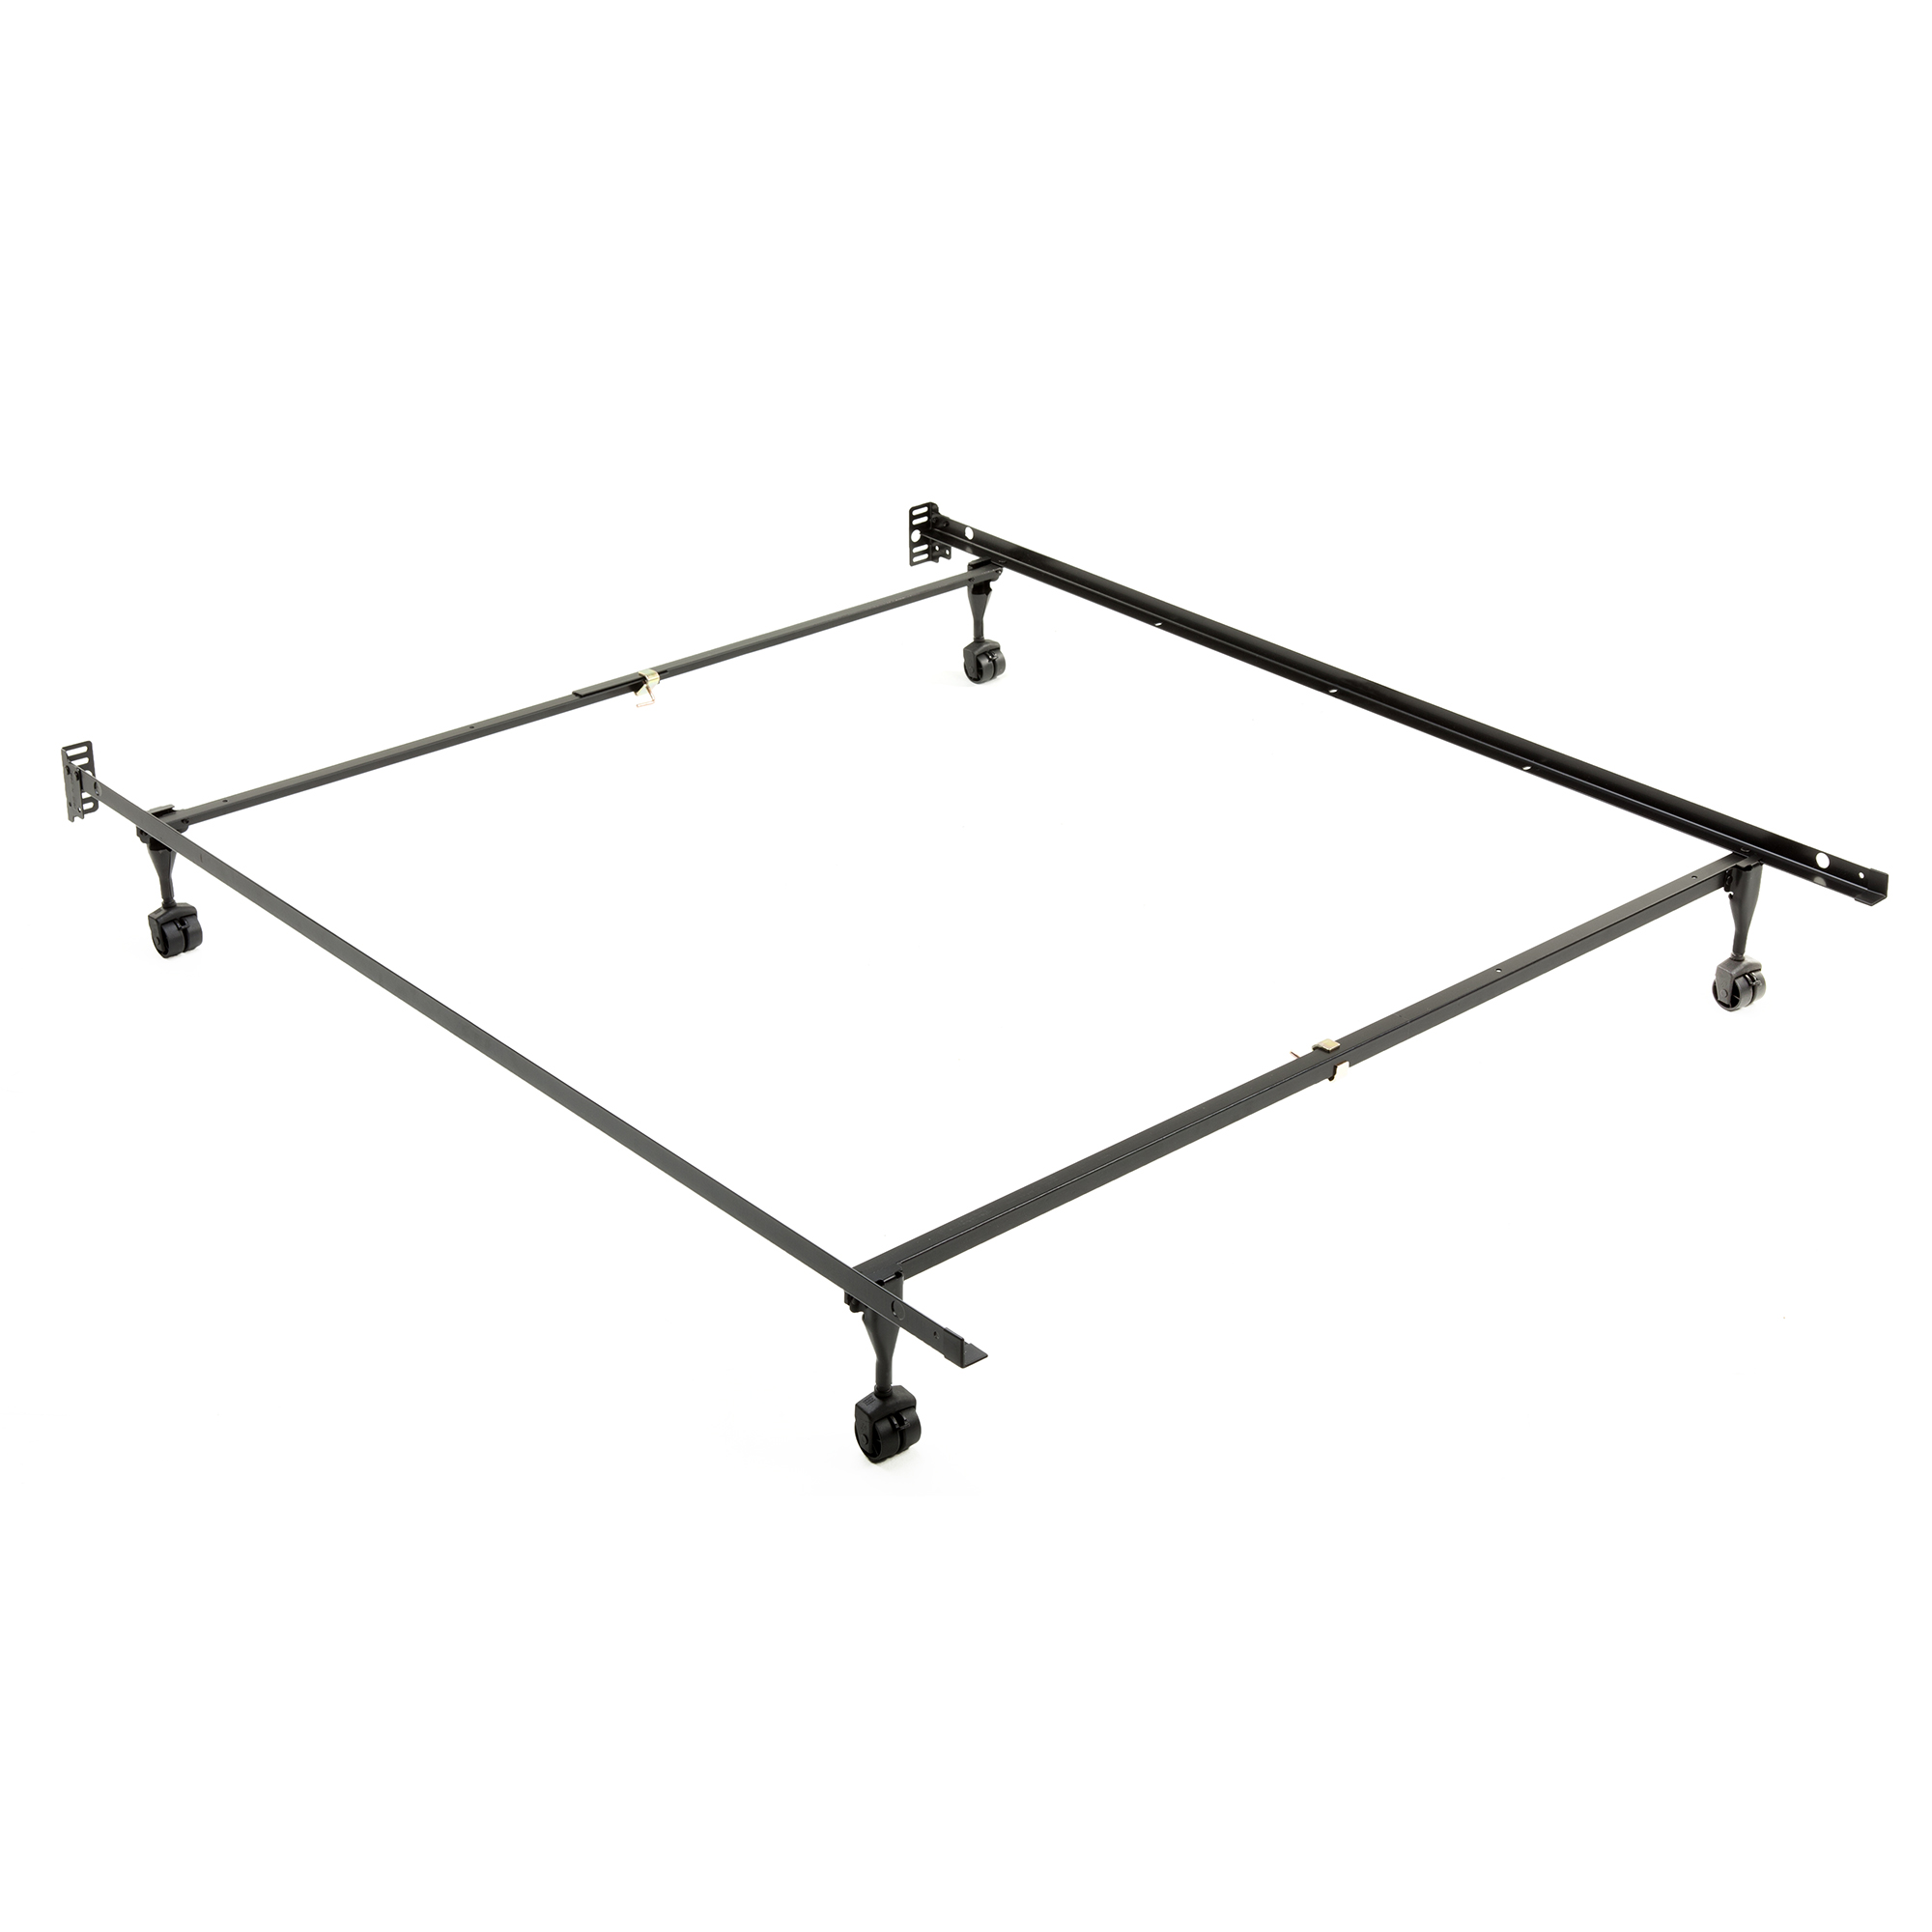 420809Fashion Bed Group Sentry 78/60R Adjustable Bed Frame with ...